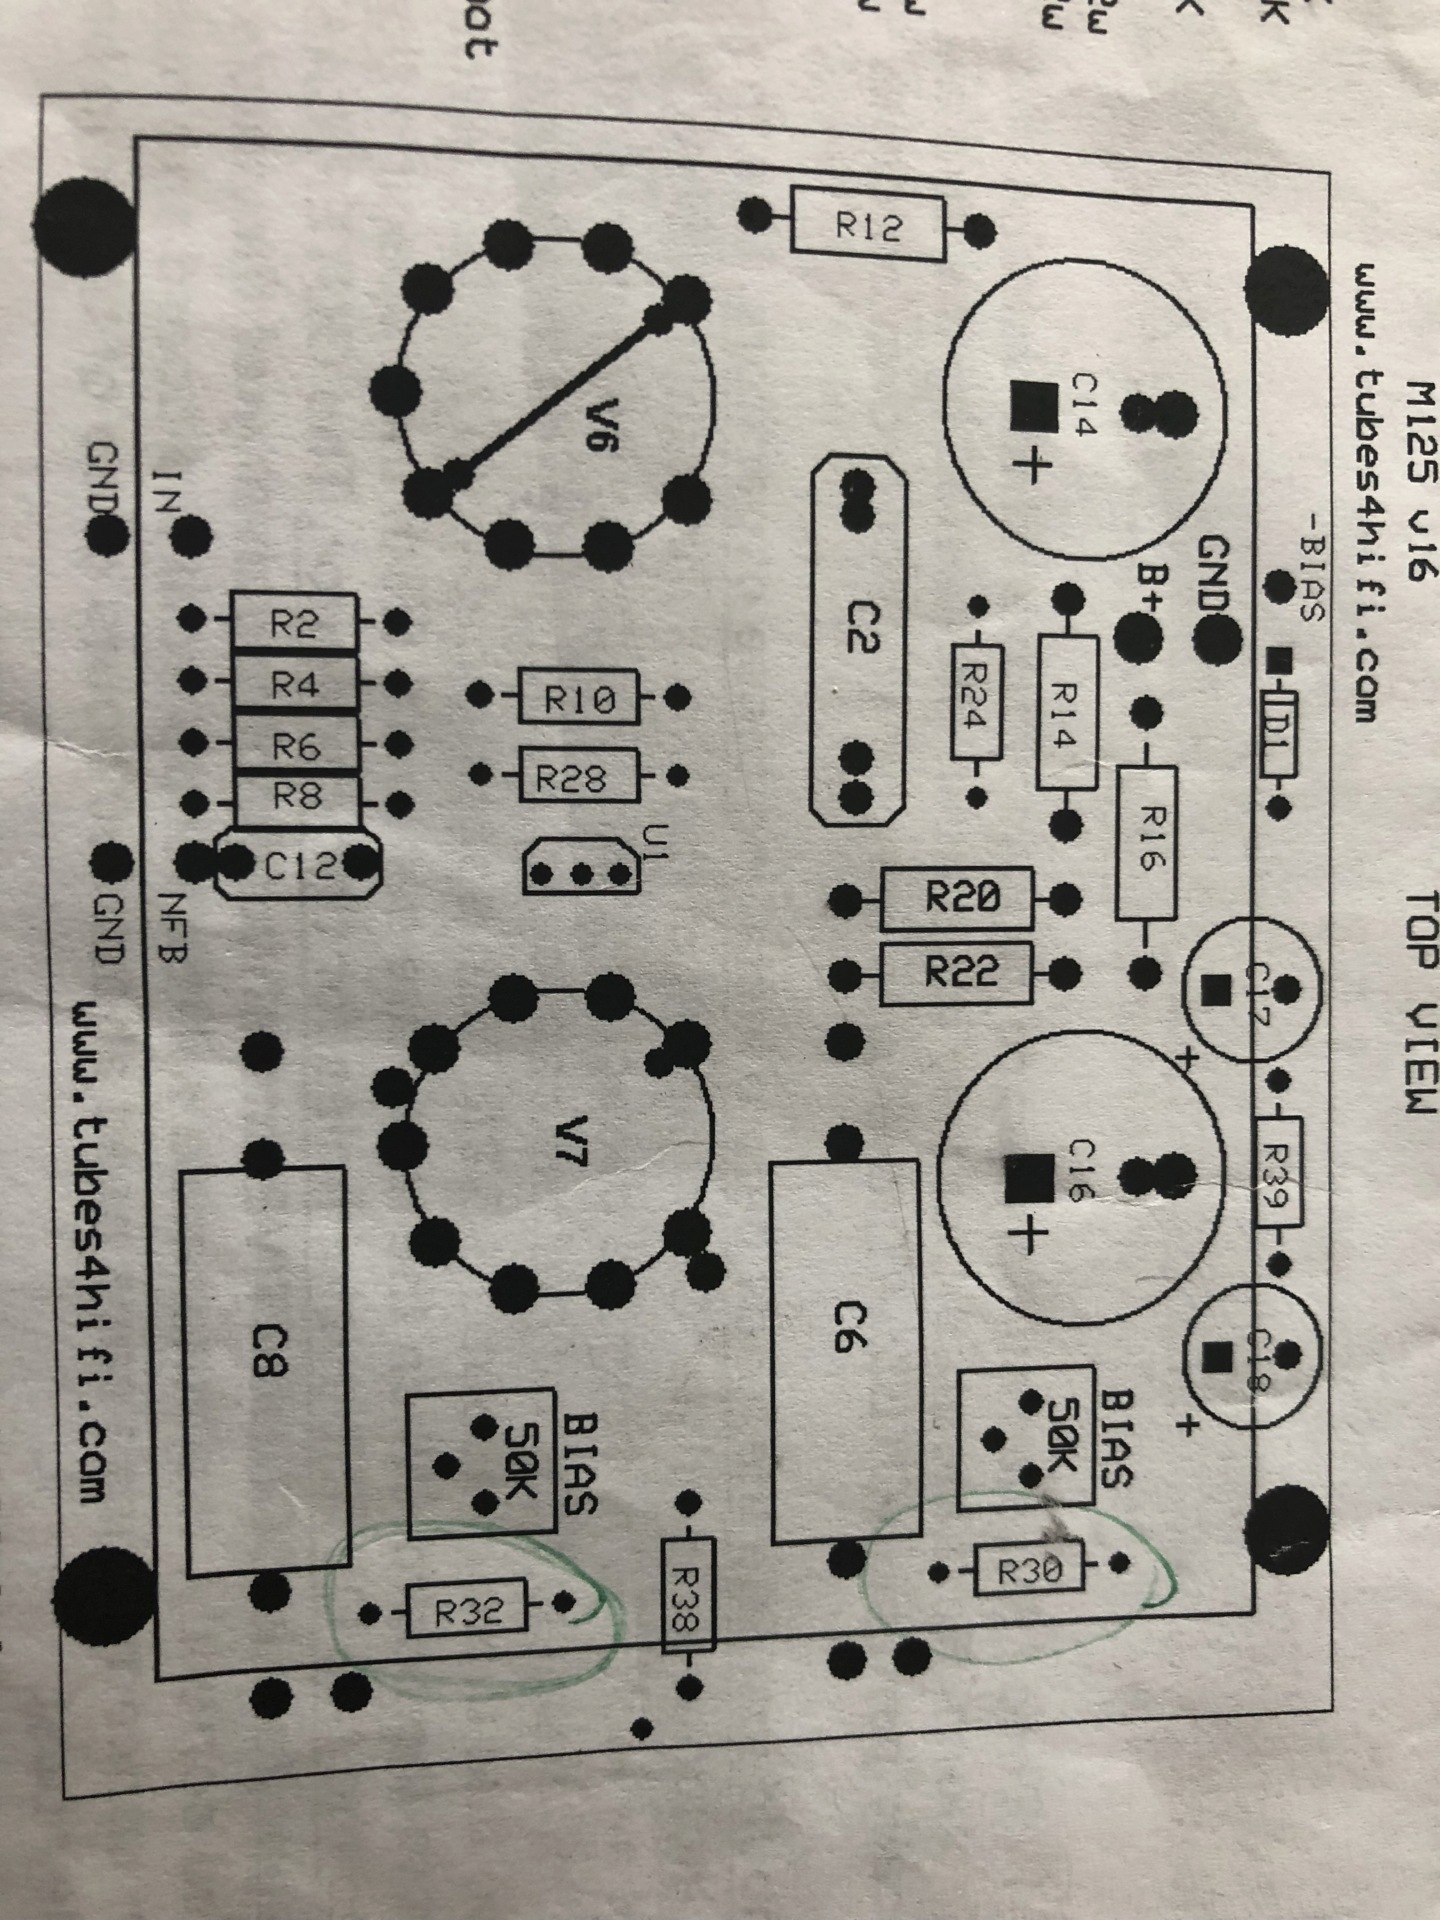 Issues with M125 after Auto Bias install 8ec74210